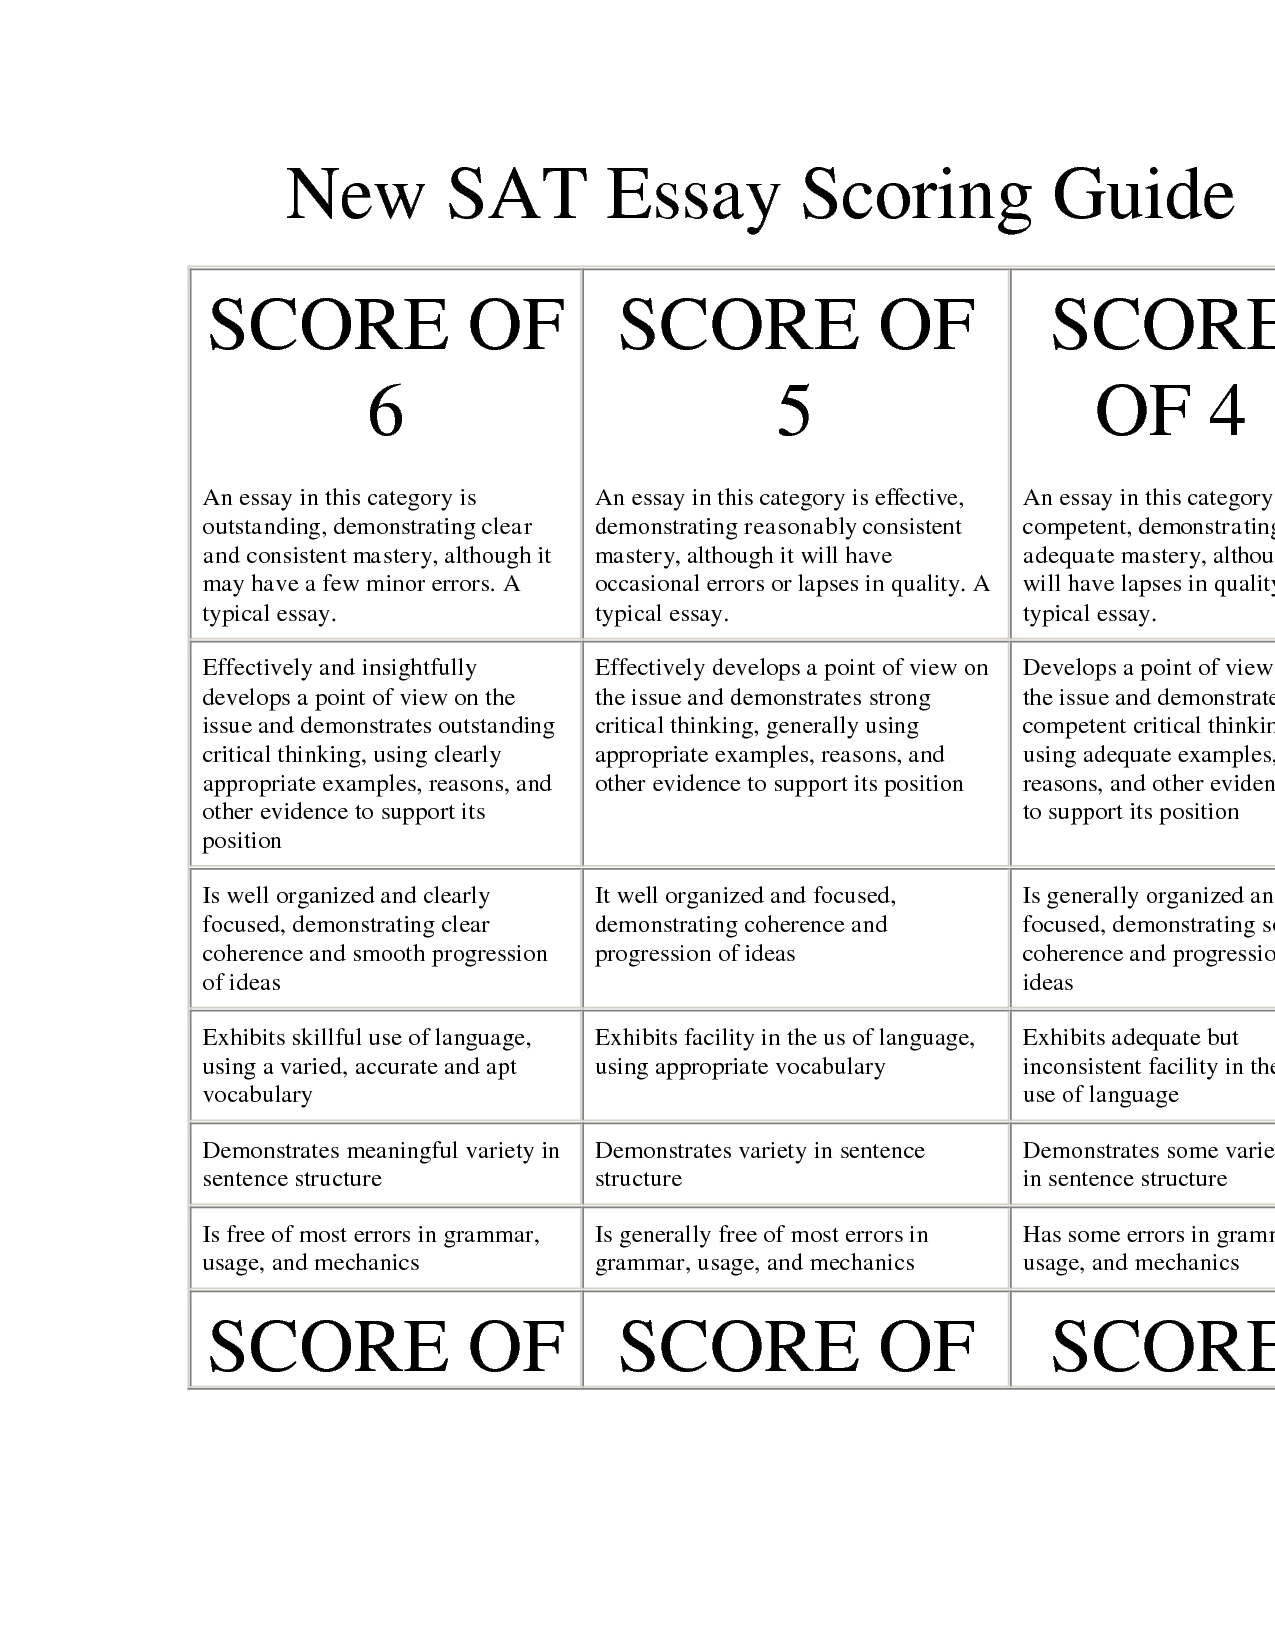 010 Essay Score Sat Goal Blockety Co Writing Percentiles Quotes Quotesgram Is There An On The L Examples Sample Tipsmat Range Prompts Time Limit Example Wondrous Tips For Persuasive Techniques Strategy Full